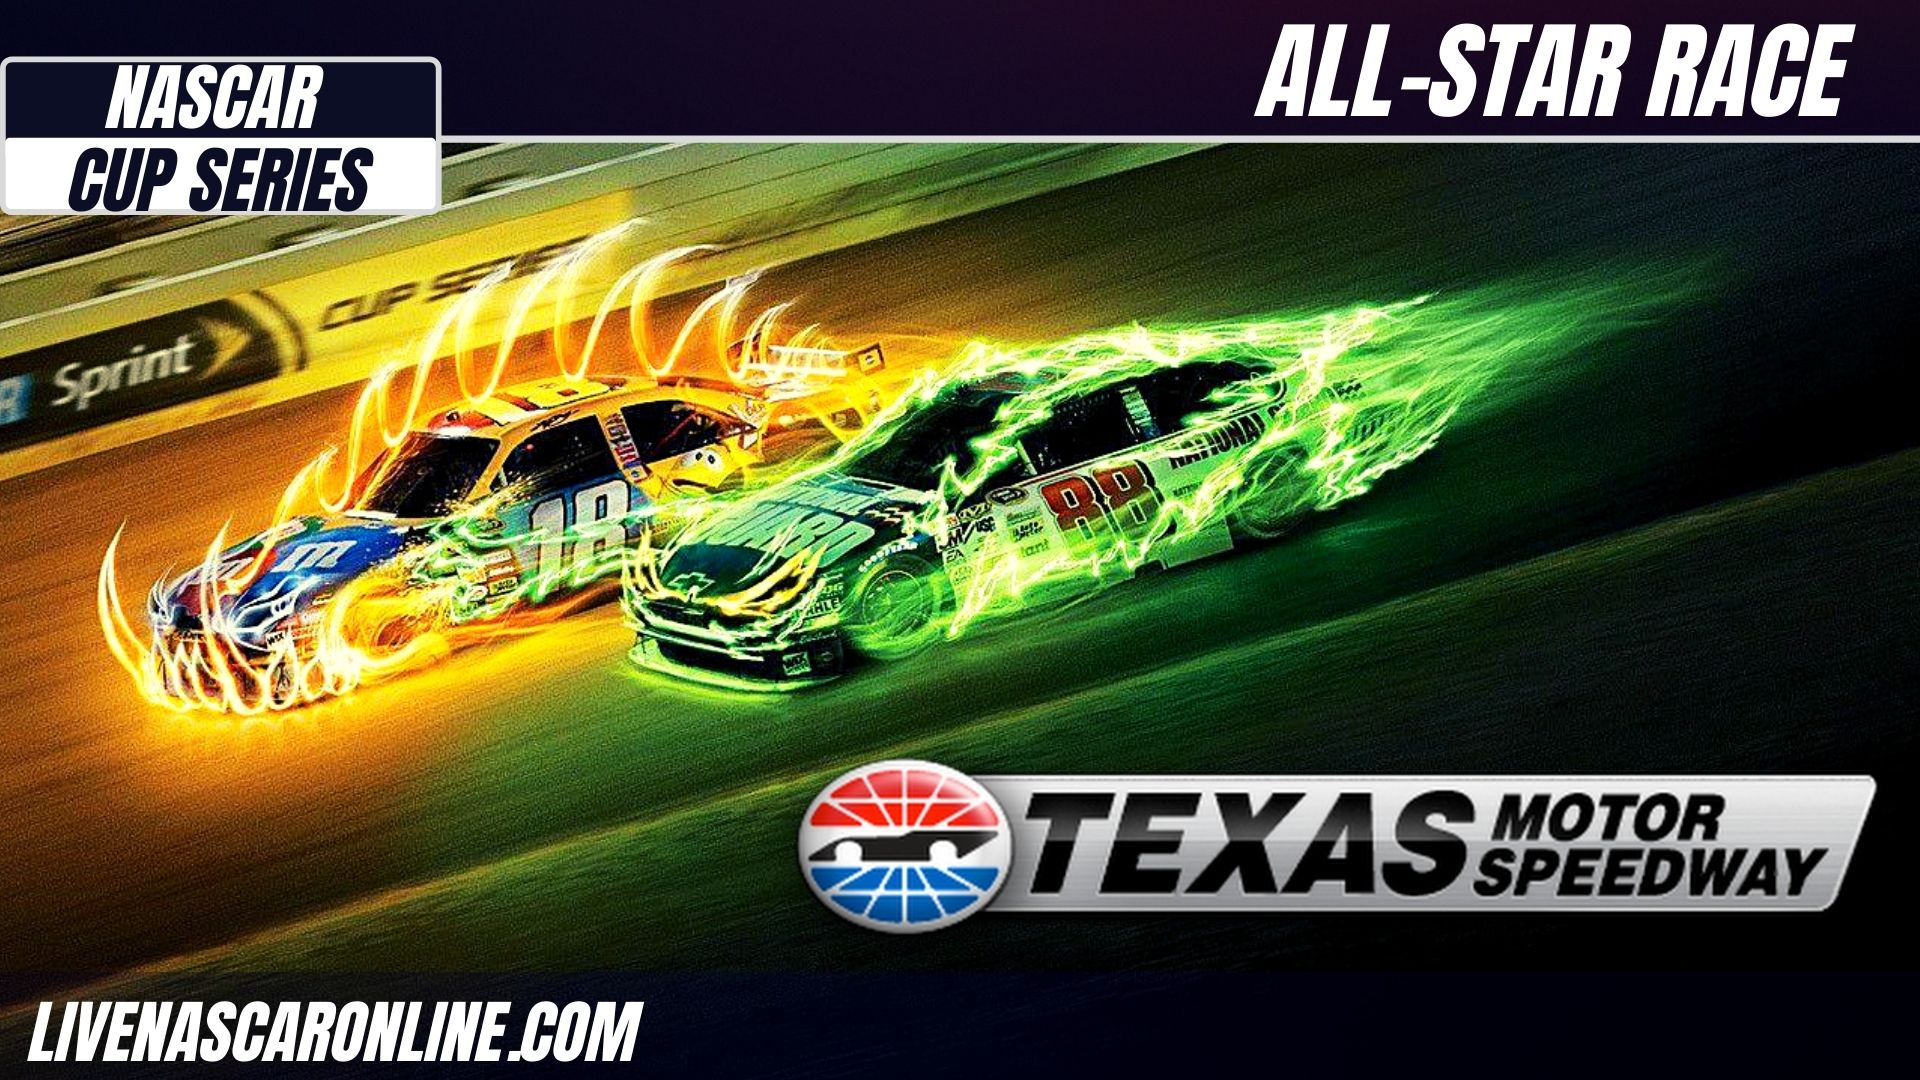 NASCAR All-Star Race Live Stream 2021